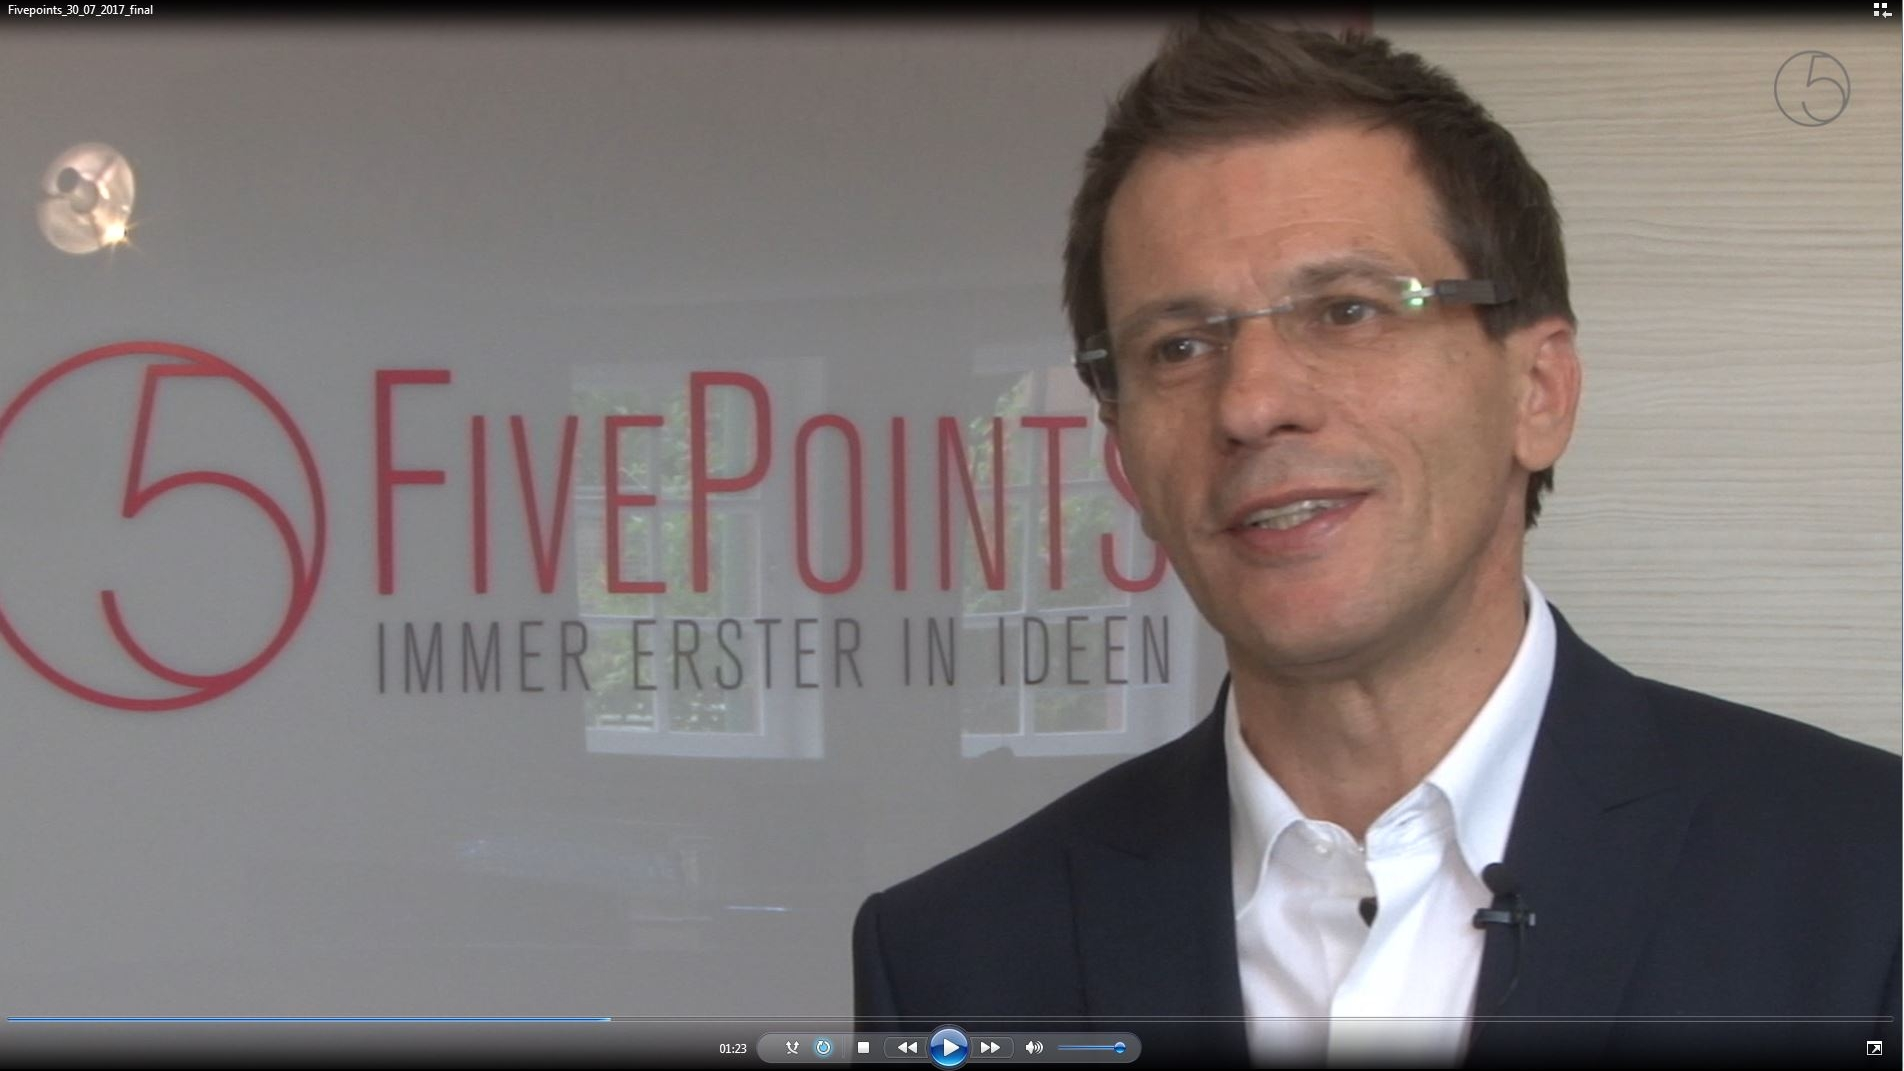 Fivepoints Promotions: Website, Profilierung, Video von MEDIACLUB